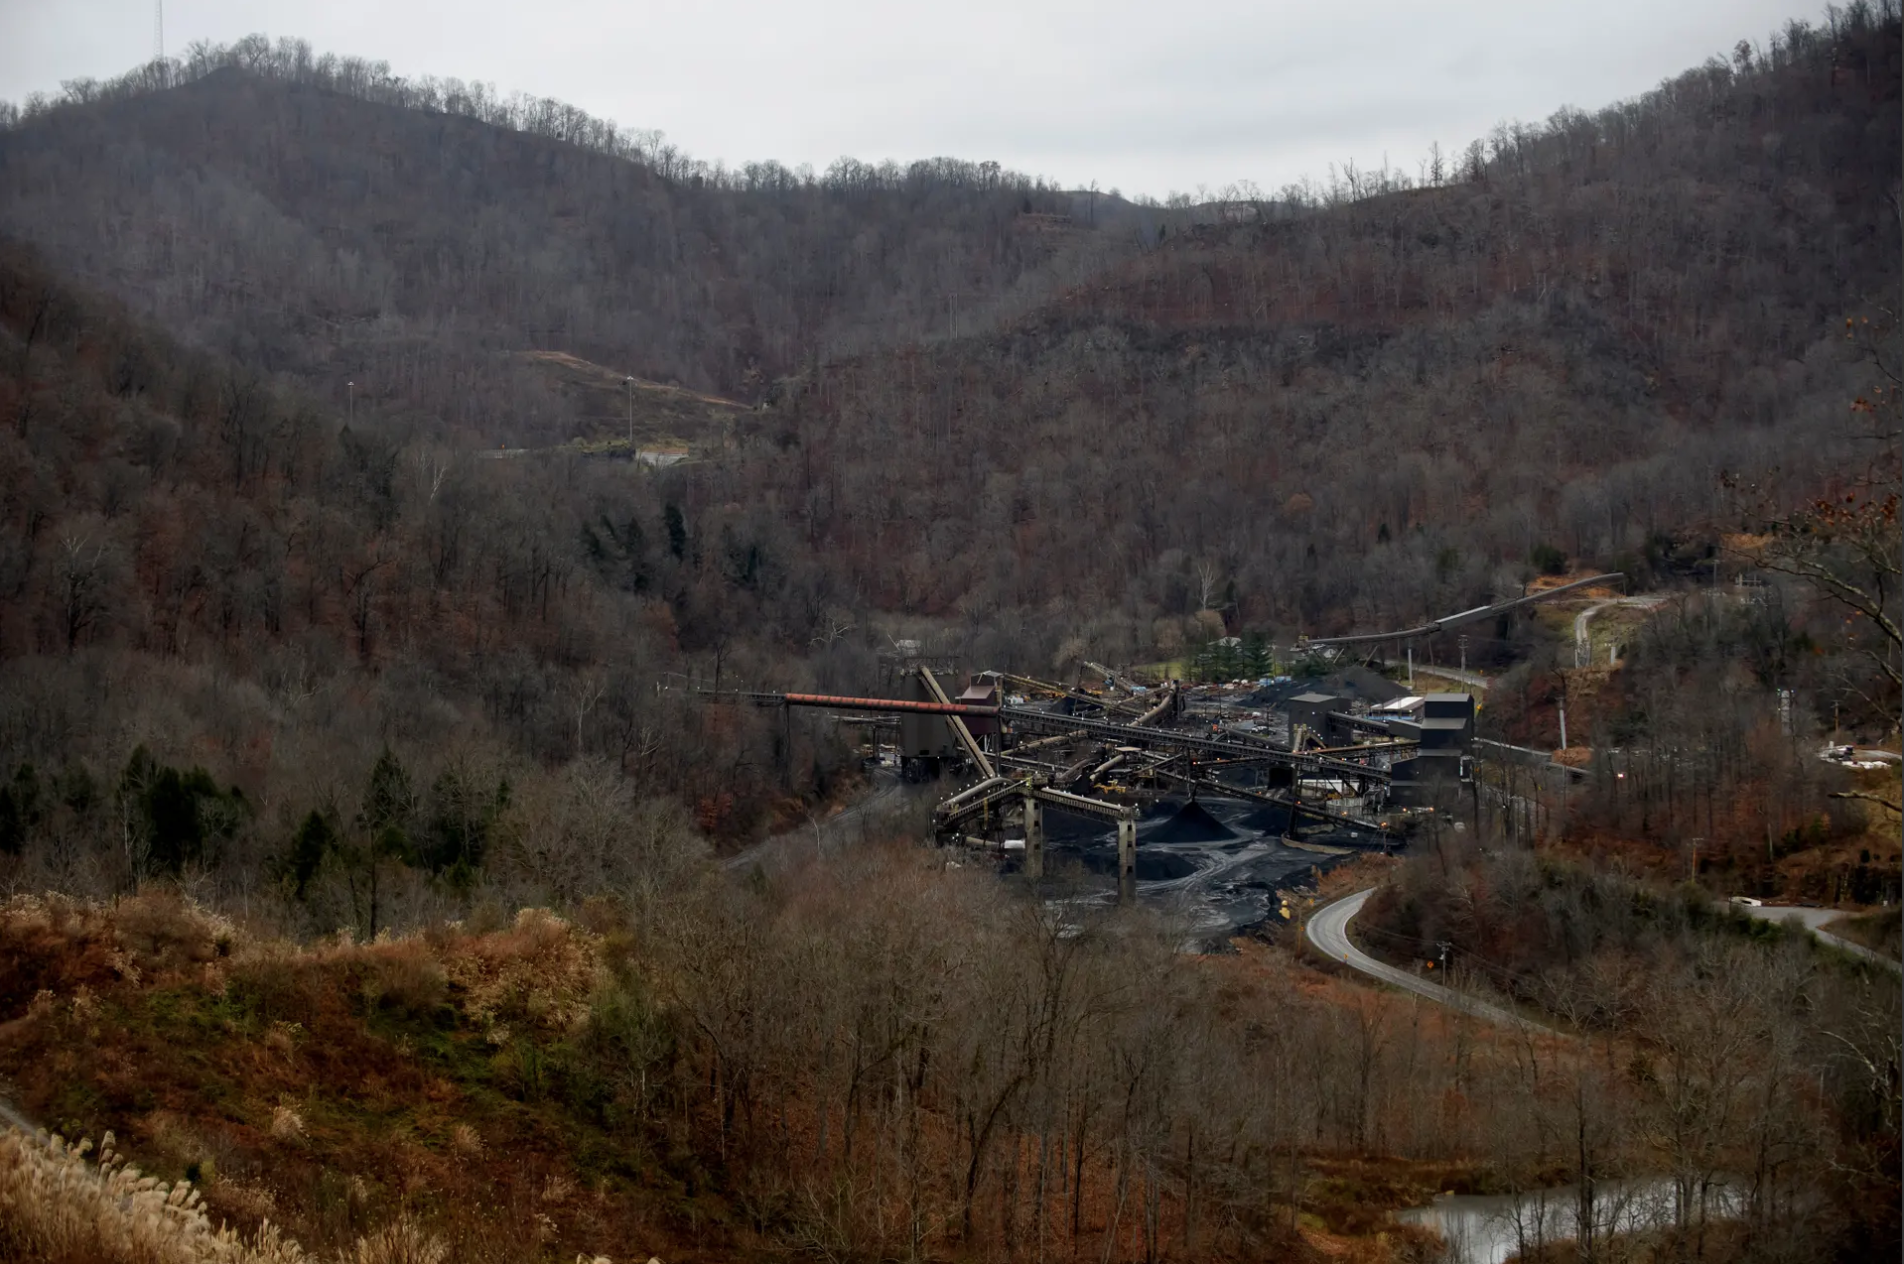 Black Lung Disease is Still Killing Miners. The Coal Industry Doesn't Want to Hear It